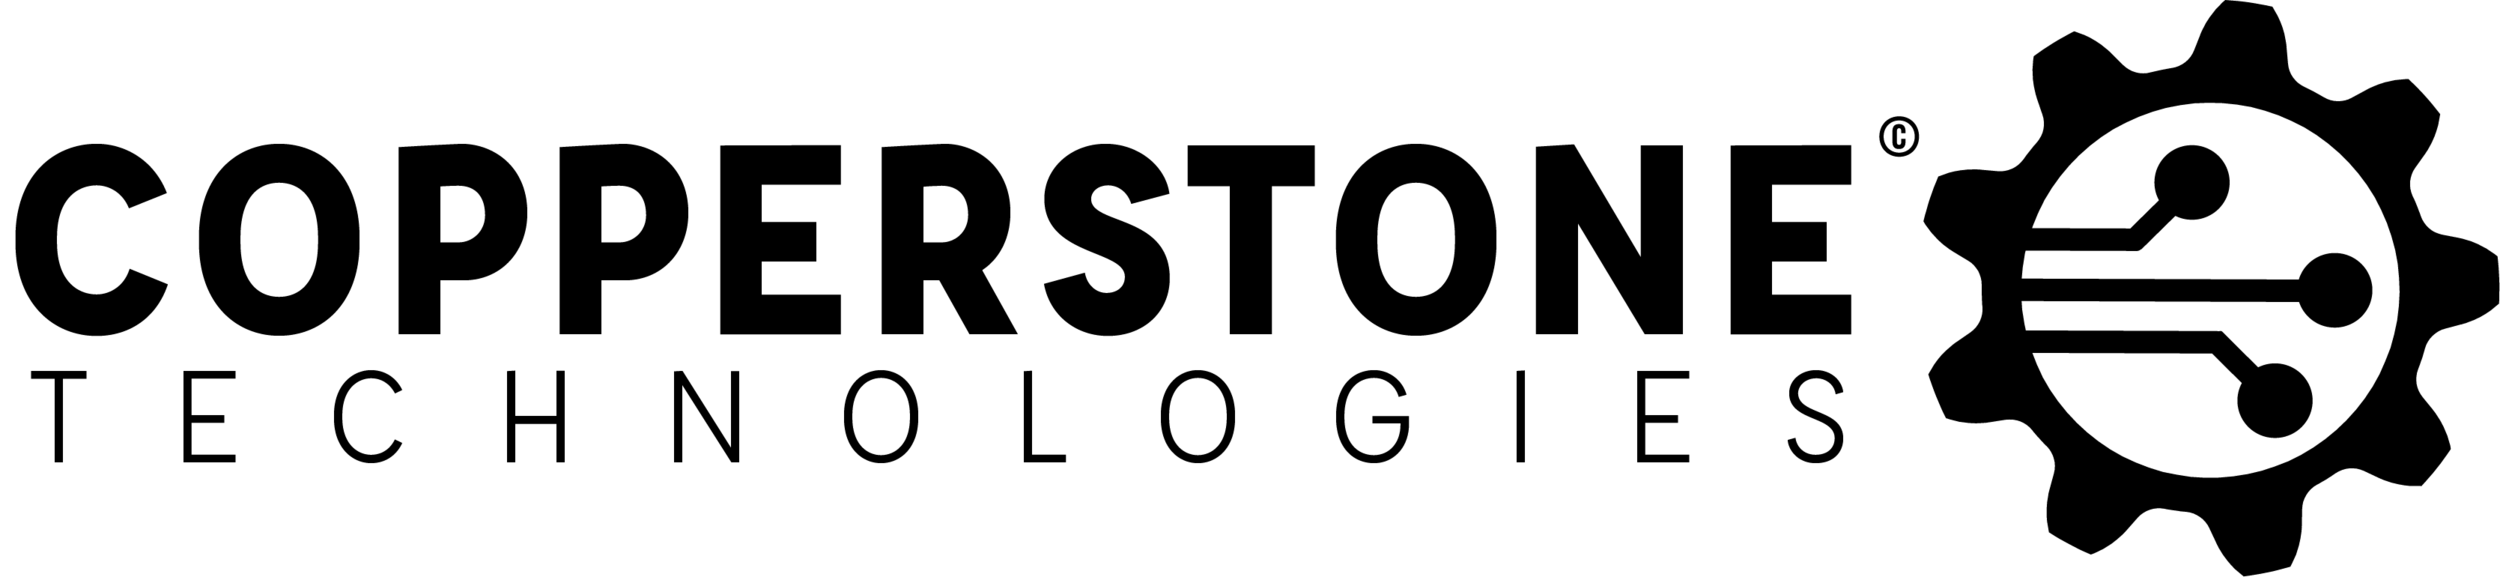 Copperstone_Logo_Black (1) (1).png